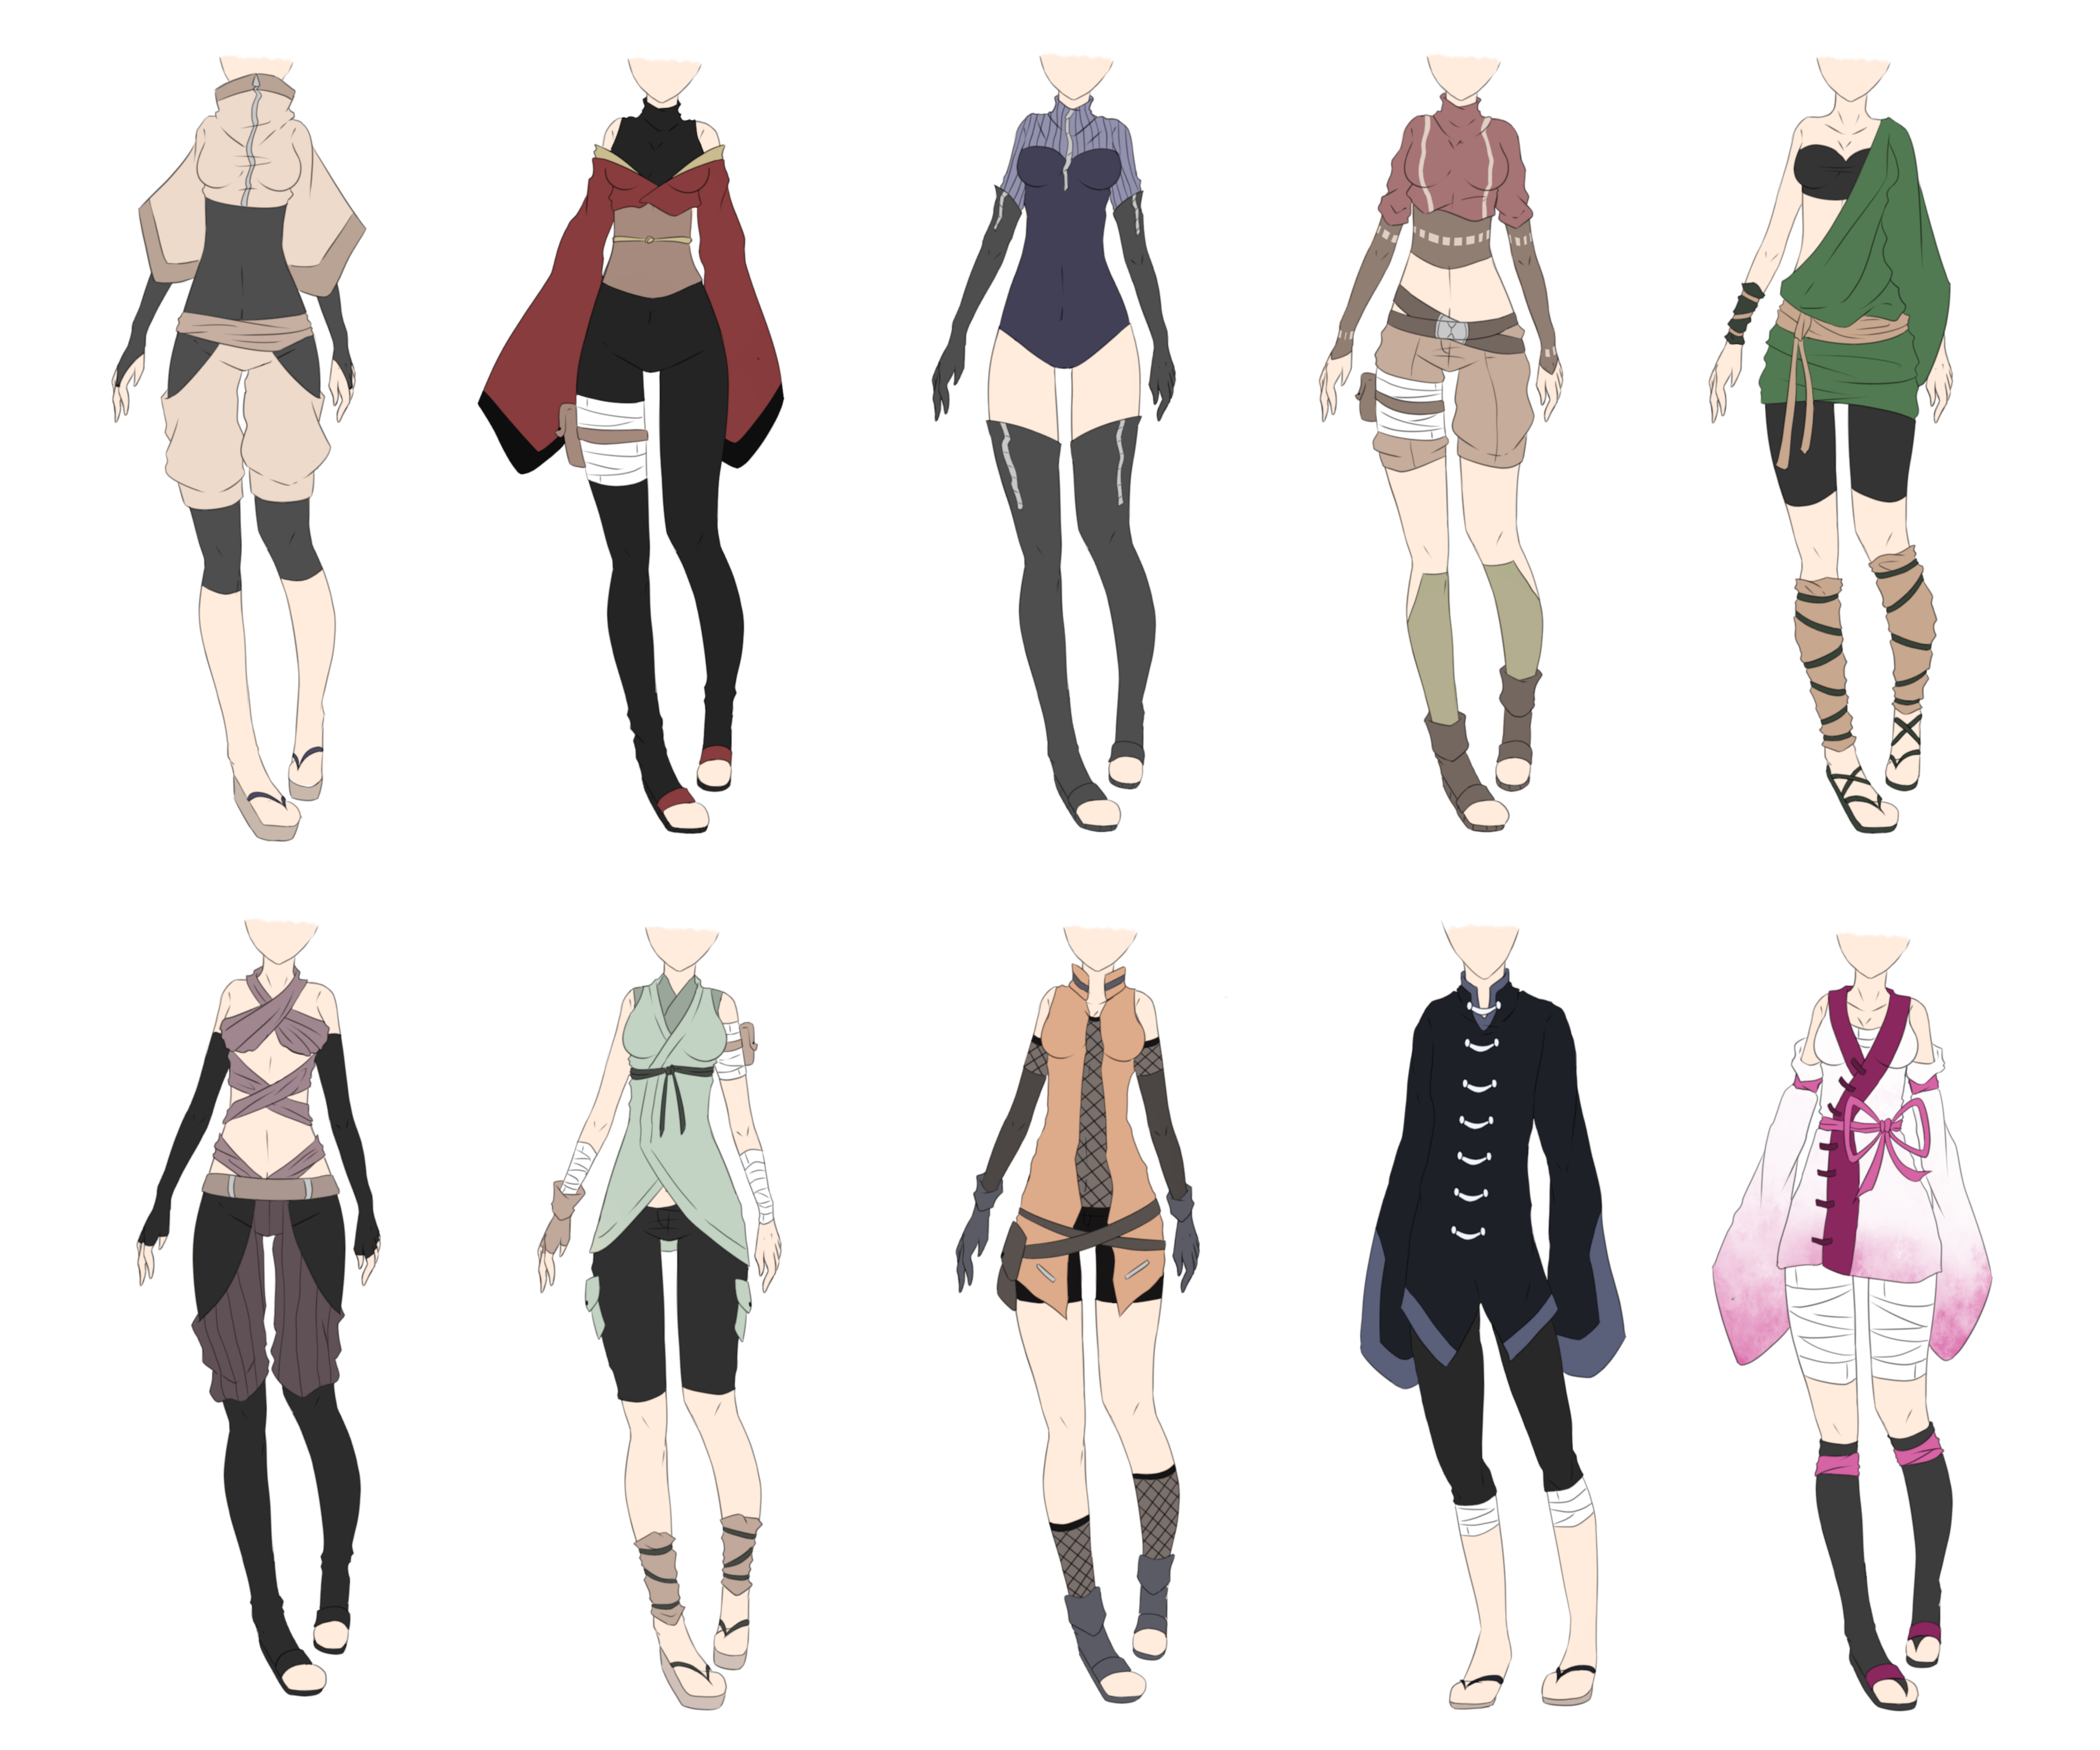 Ninja Outfits Fantasy Clothing Anime Outfits Ninja Outfit